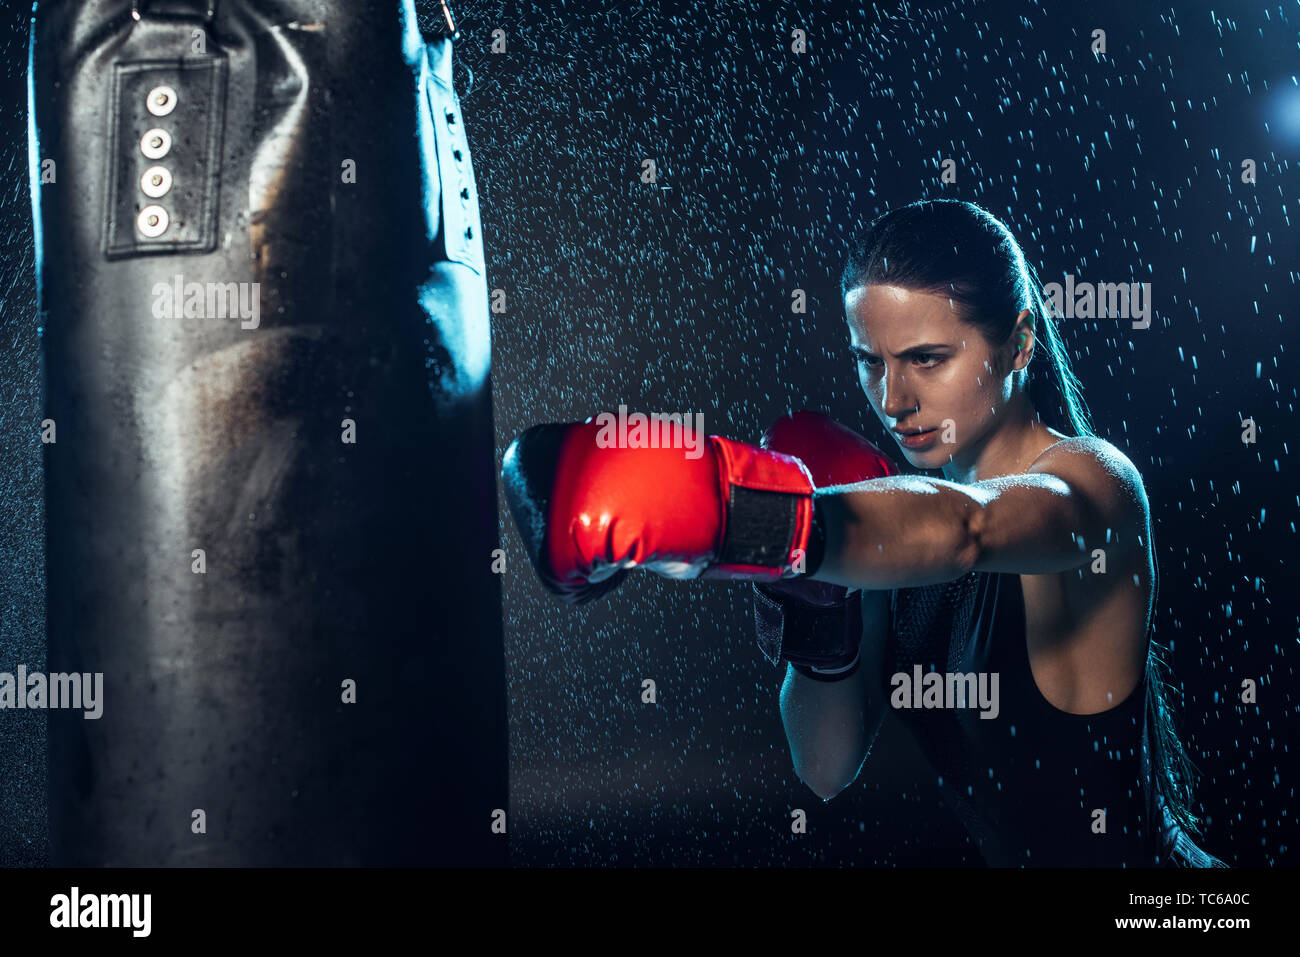 Strong boxer in red boxing gloves training under water drops on black - Stock Image